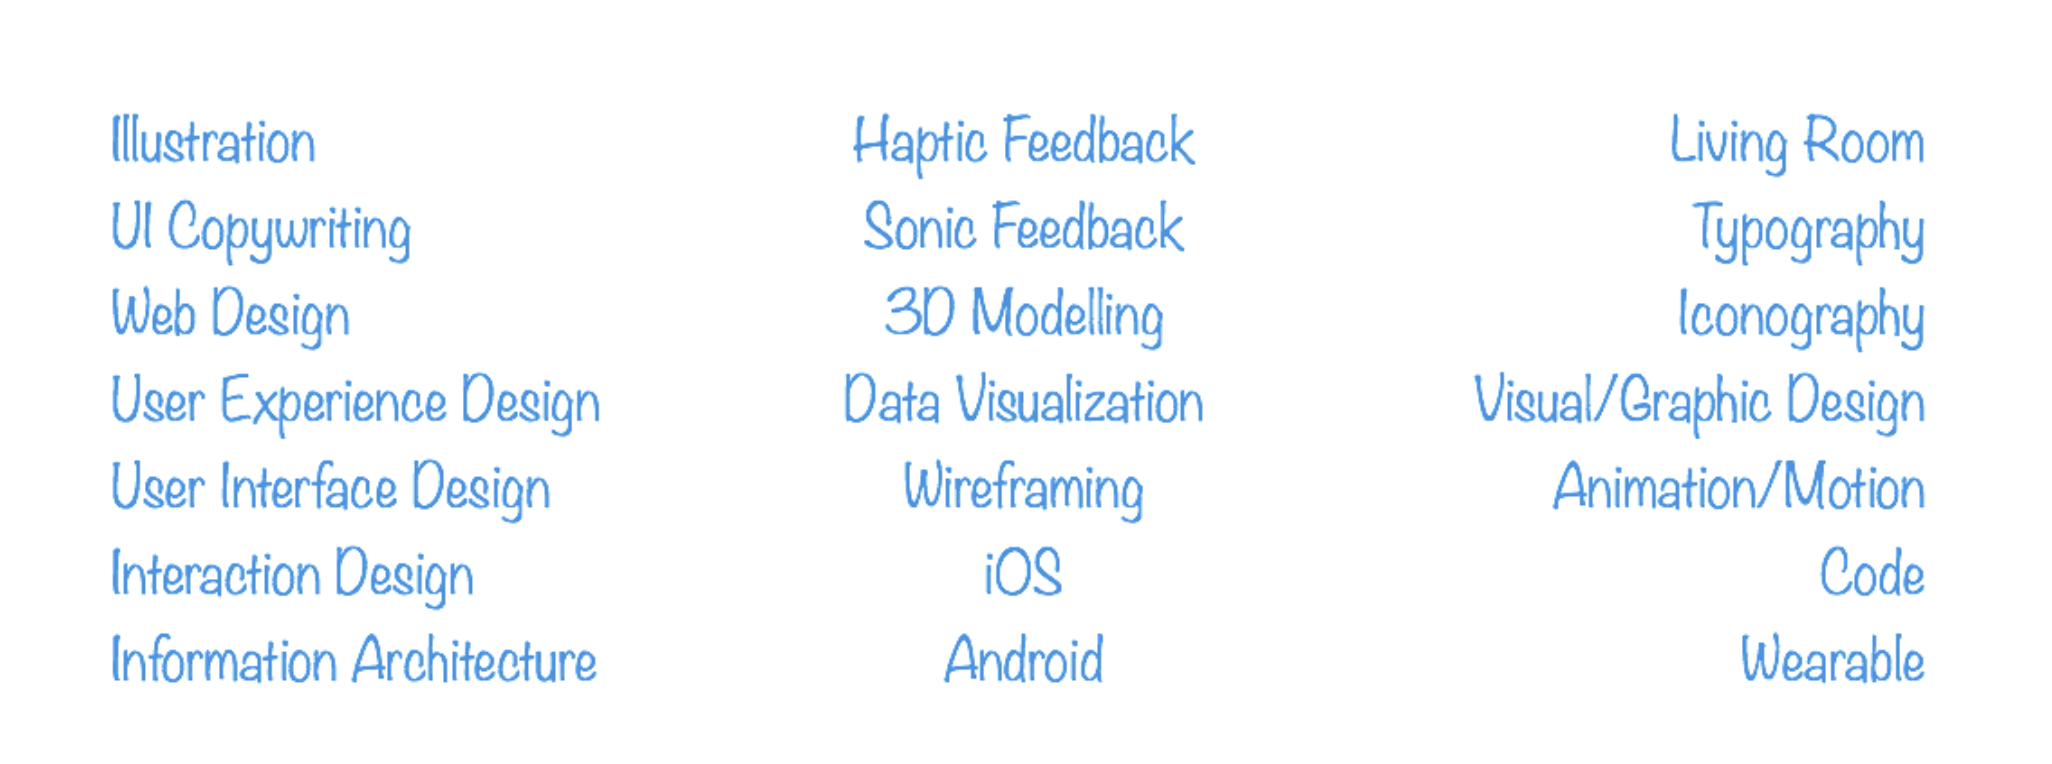 A sampling of some of the types of design, platforms, skills, etc. that we came up with in our exercise.